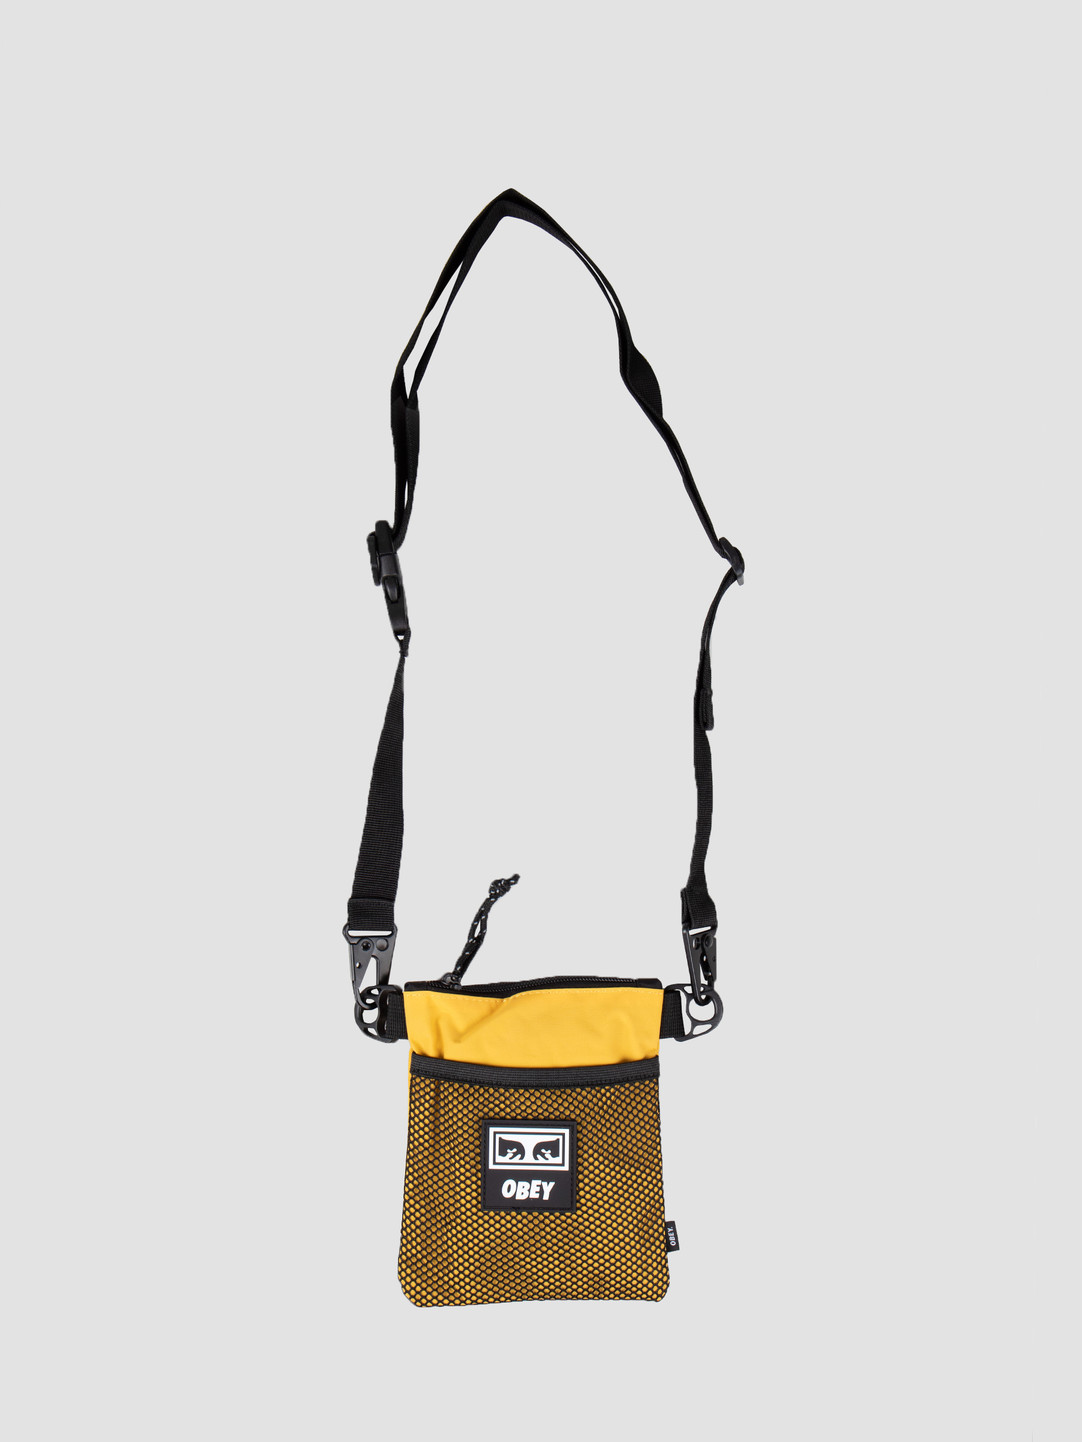 Obey Obey Conditions Side Pouch YEL 100010111